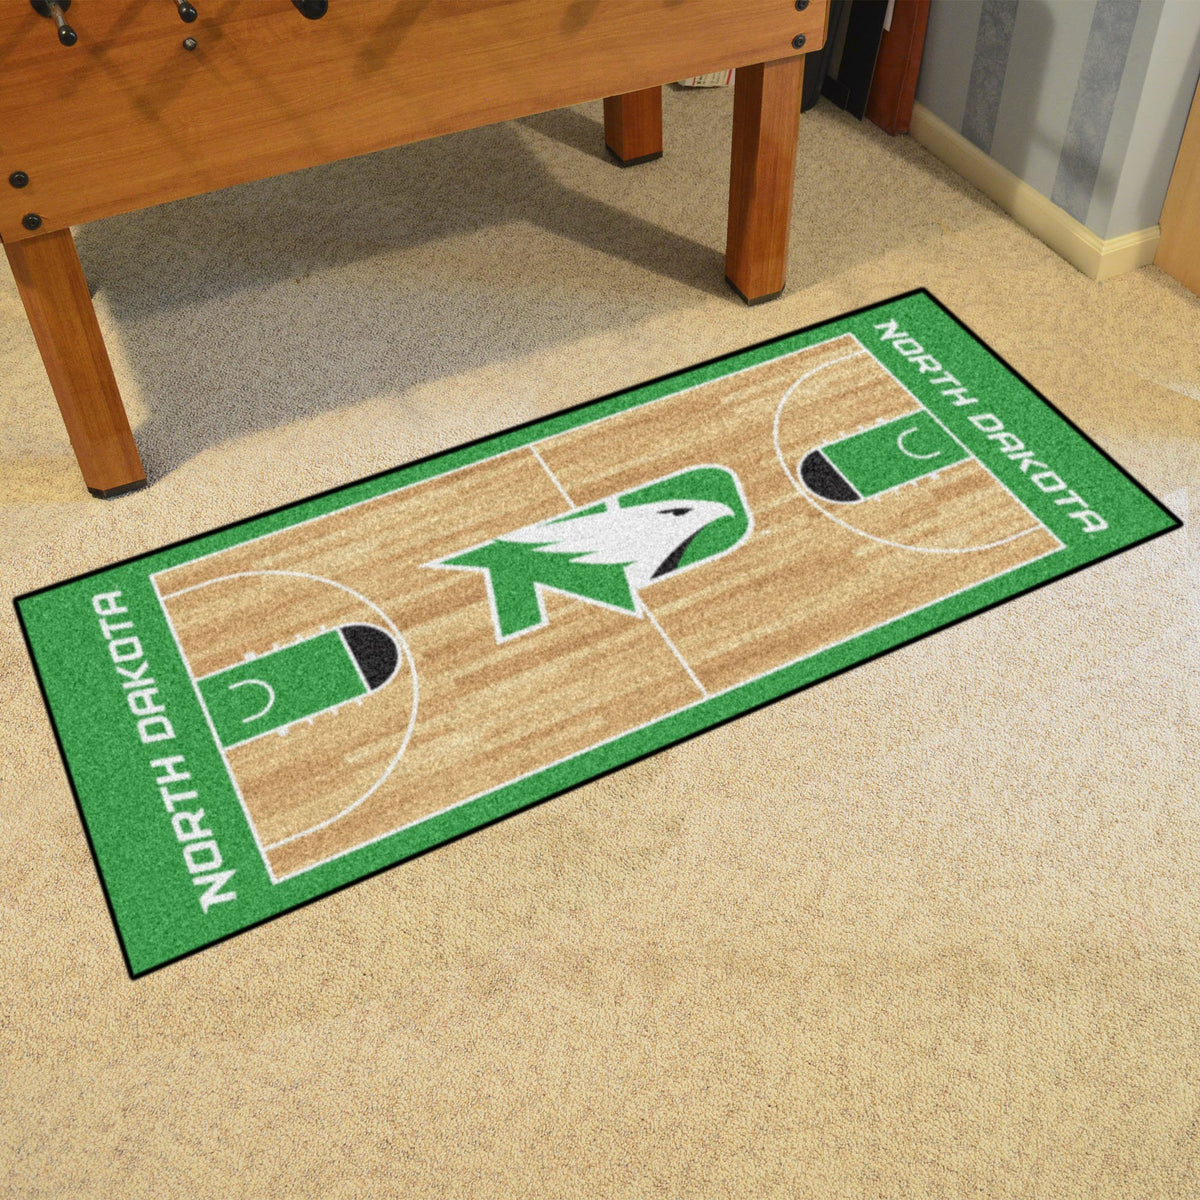 Collegiate - NCAA Basketball Runner Collegiate Mats, Rectangular Mats, NCAA Basketball Runner, Collegiate, Home Fan Mats North Dakota